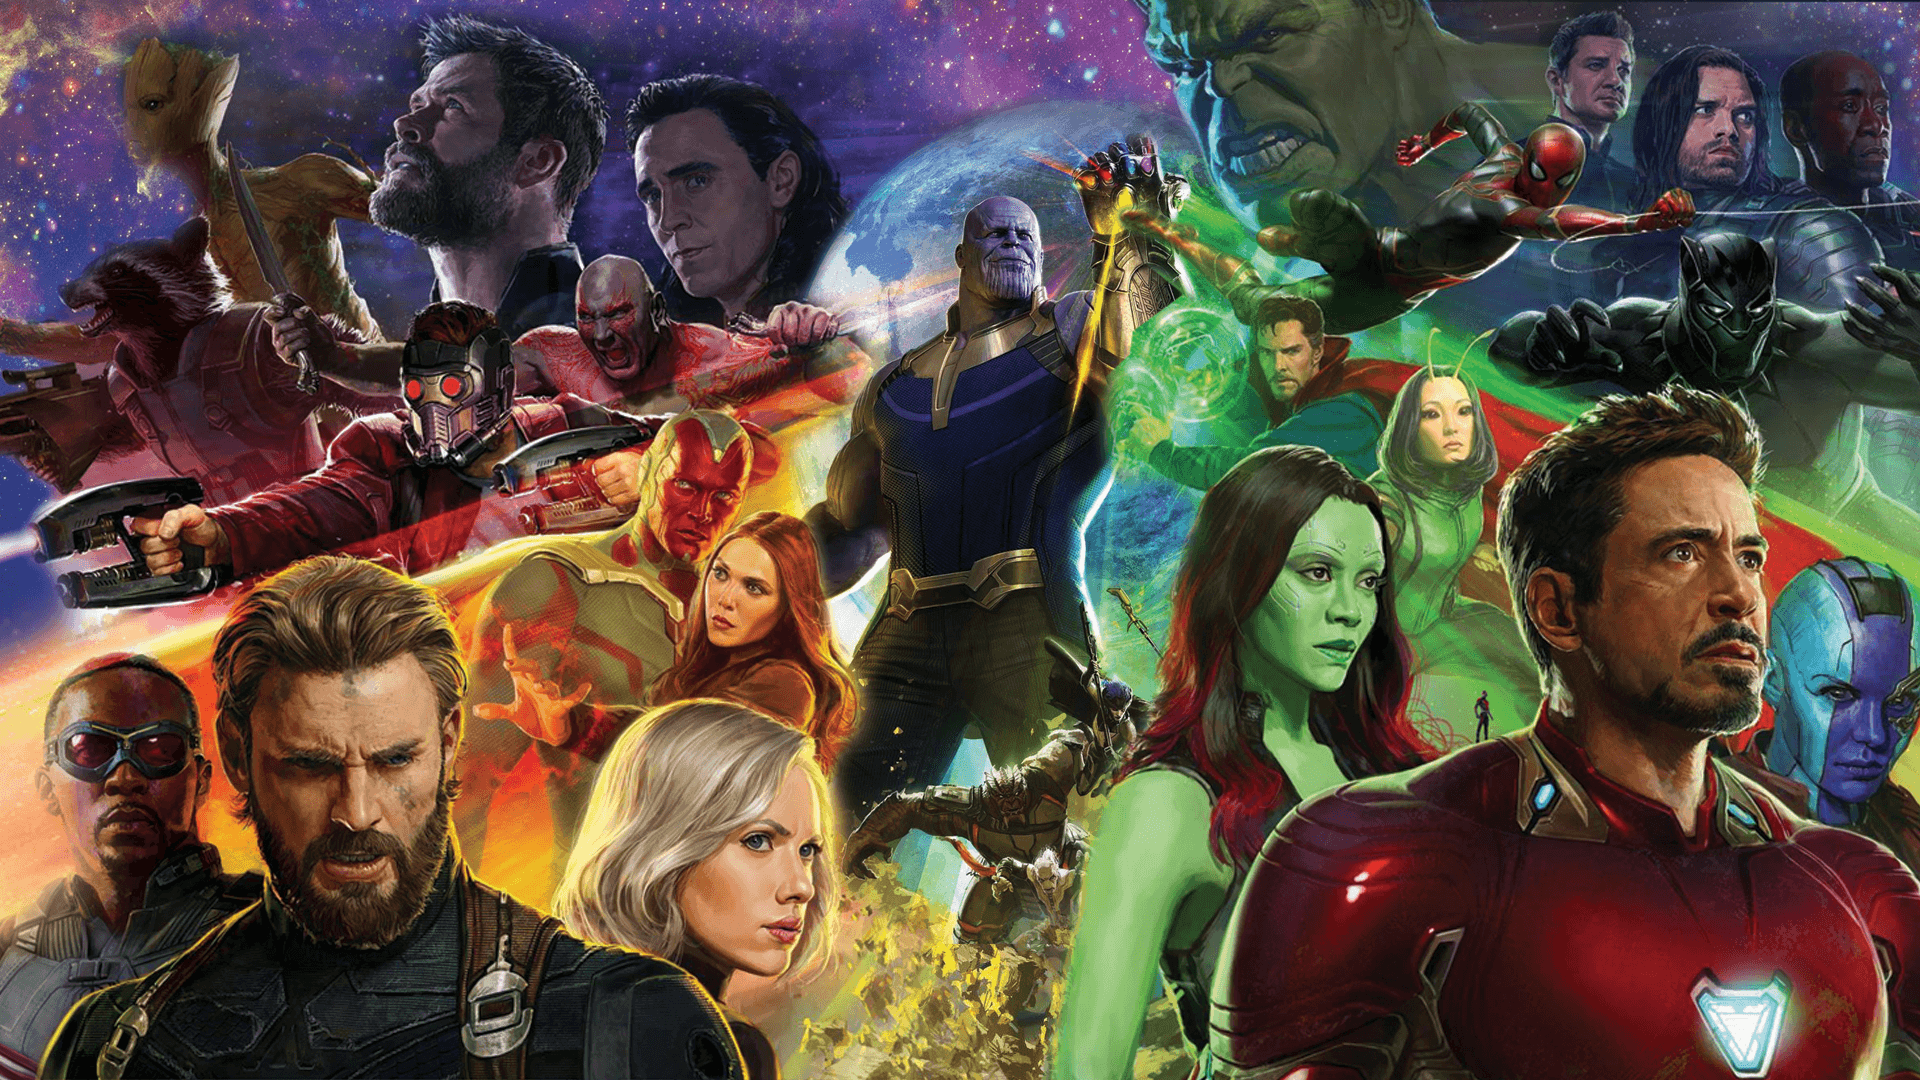 An Avengers Infinity War movie poster